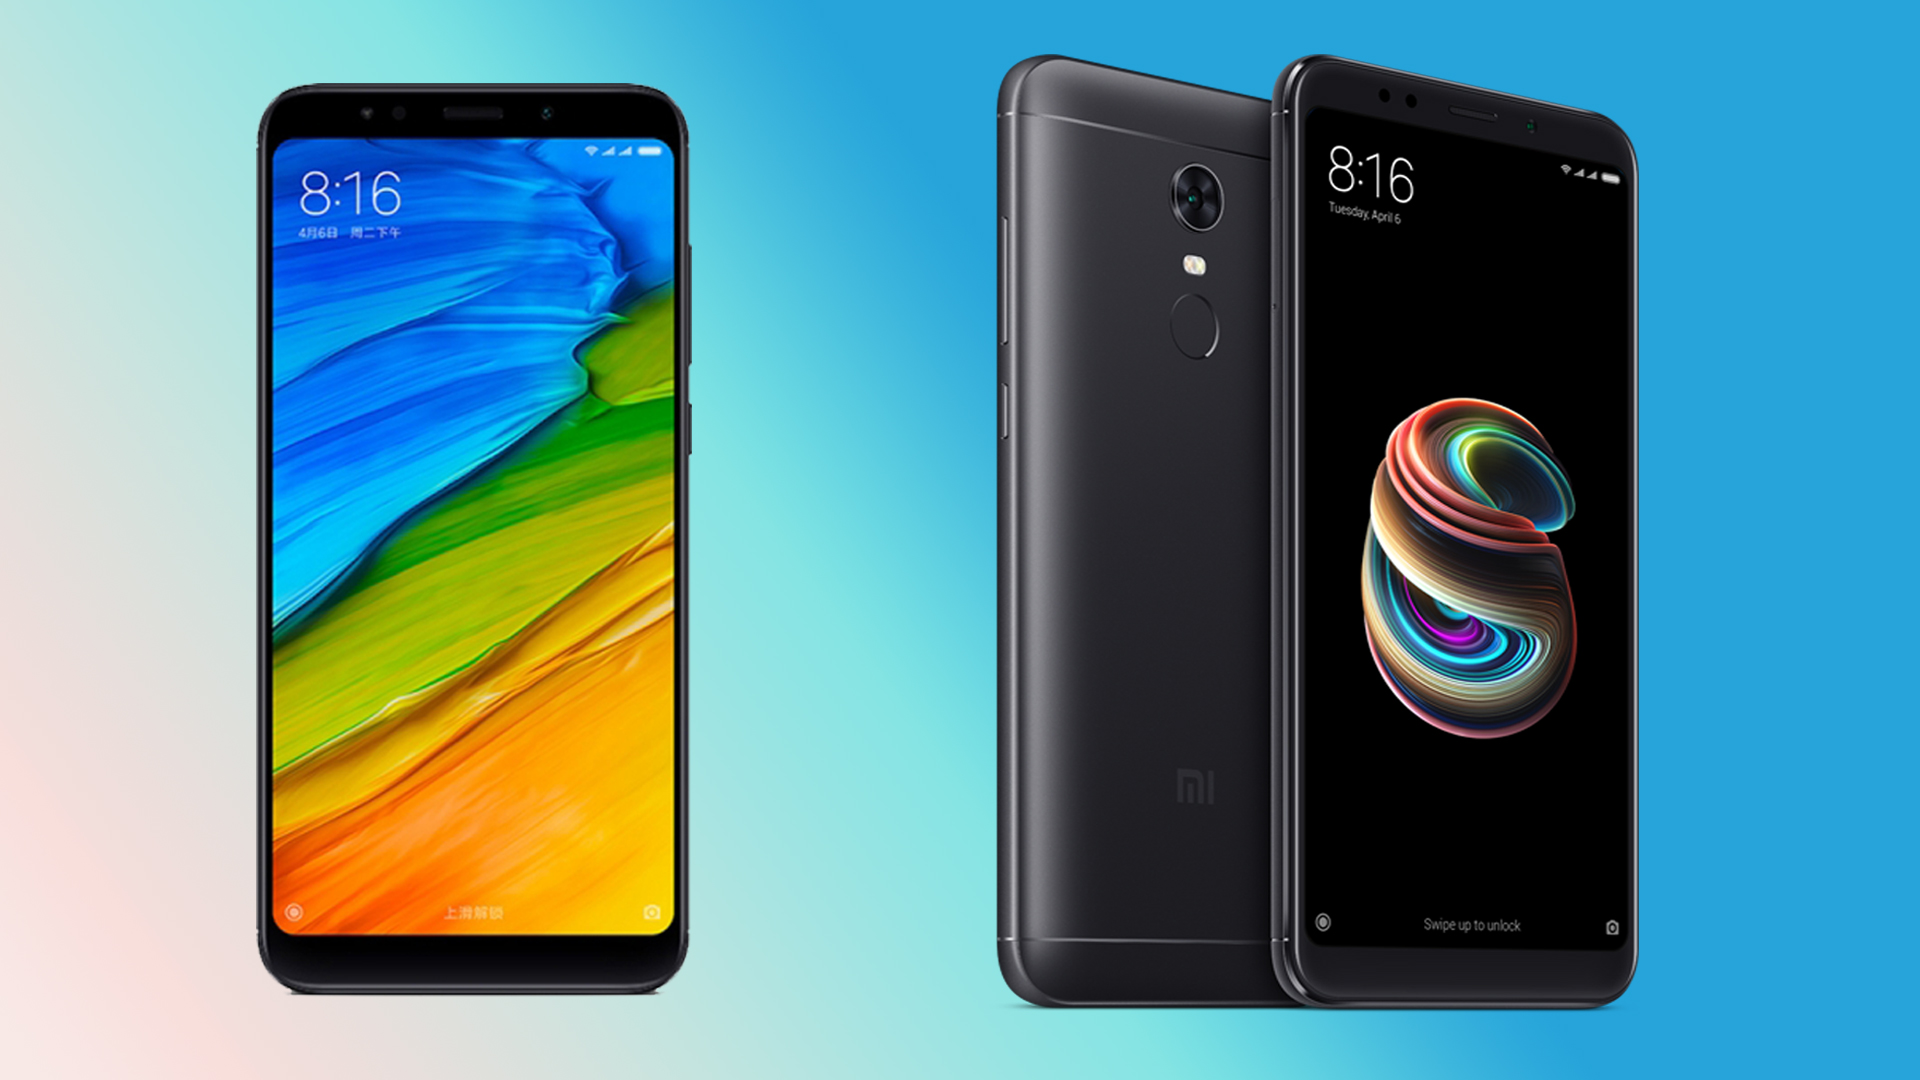 Xiaomi Redmi 5 Plus officially launched in Nepal